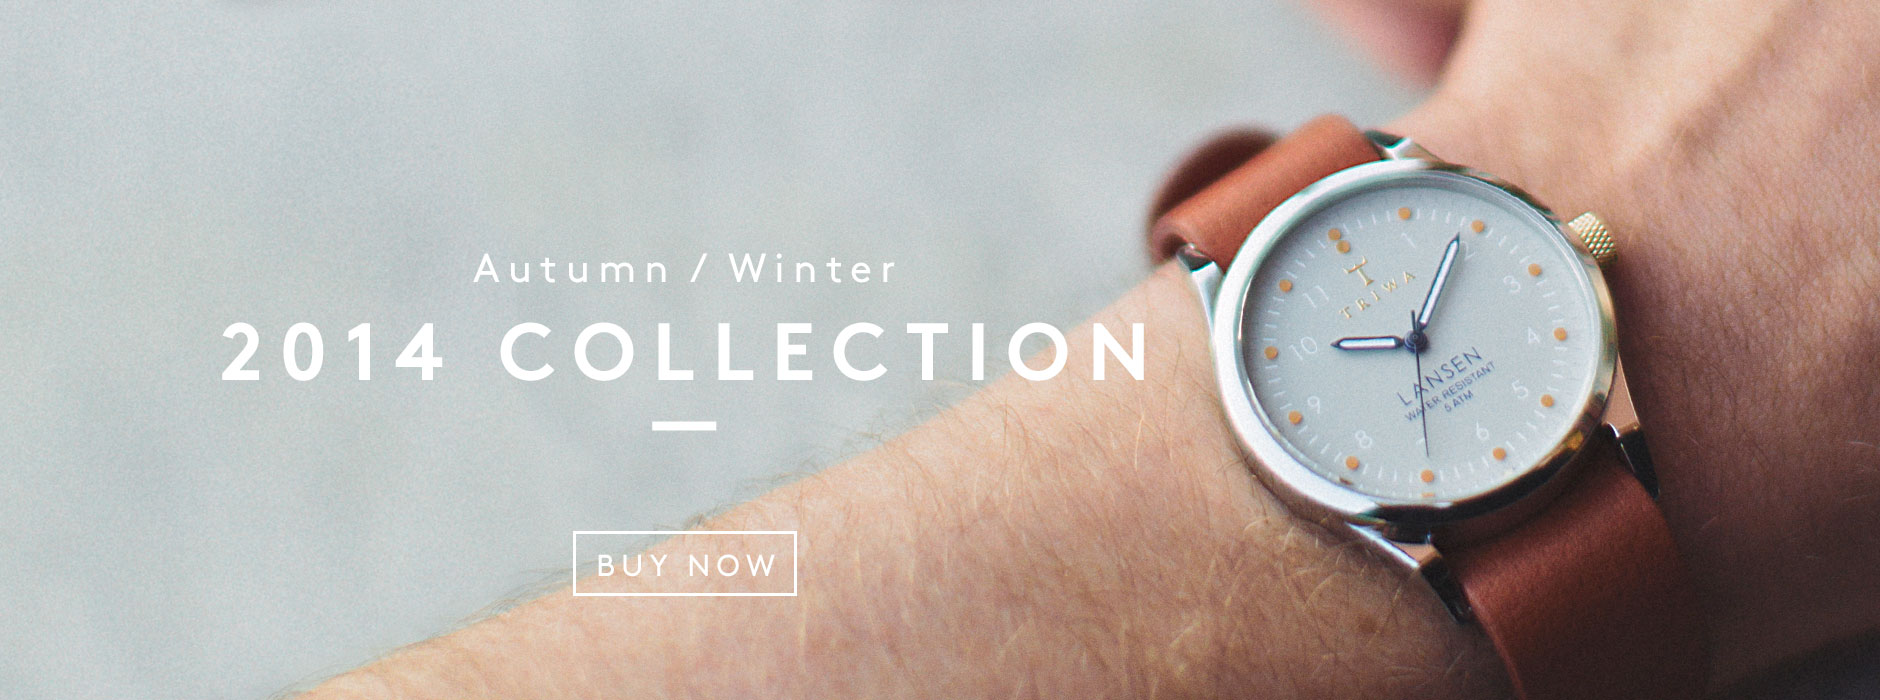 TRIWA - Watches & Sunglasses from Sweden